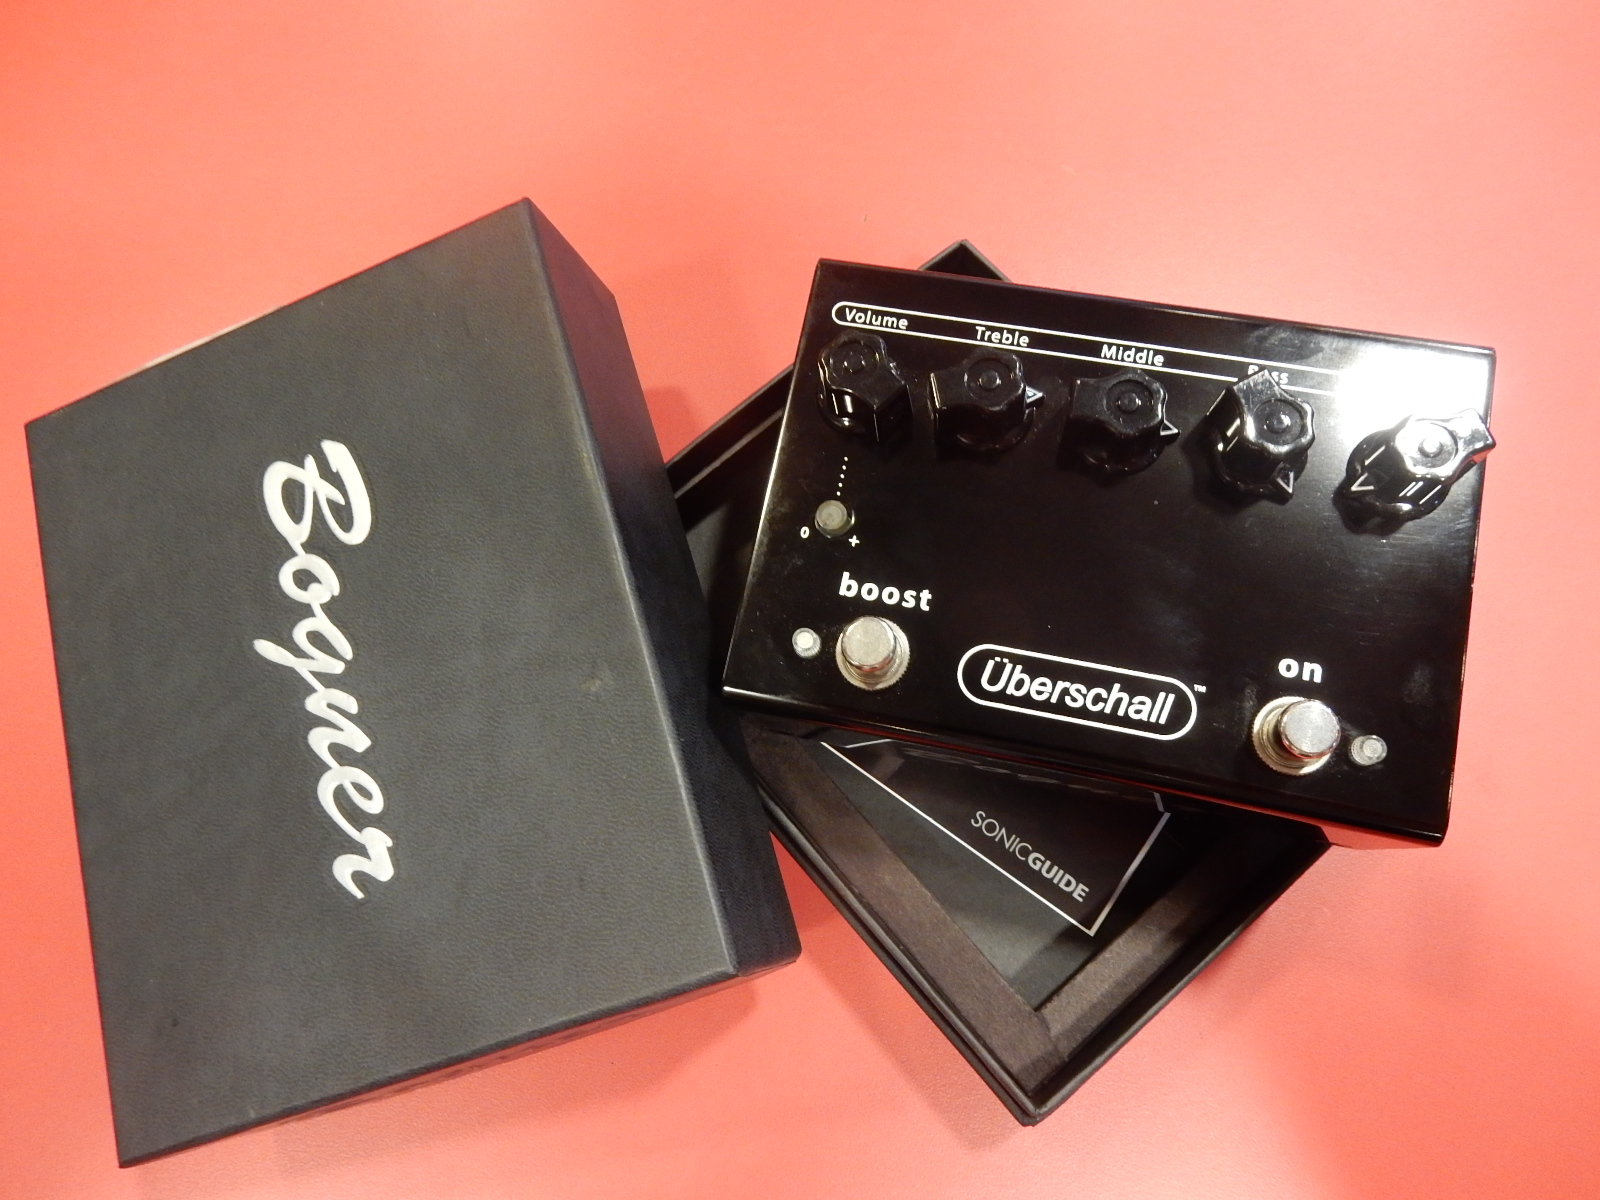 Bogner - Uberschall Distortion Pedal in box